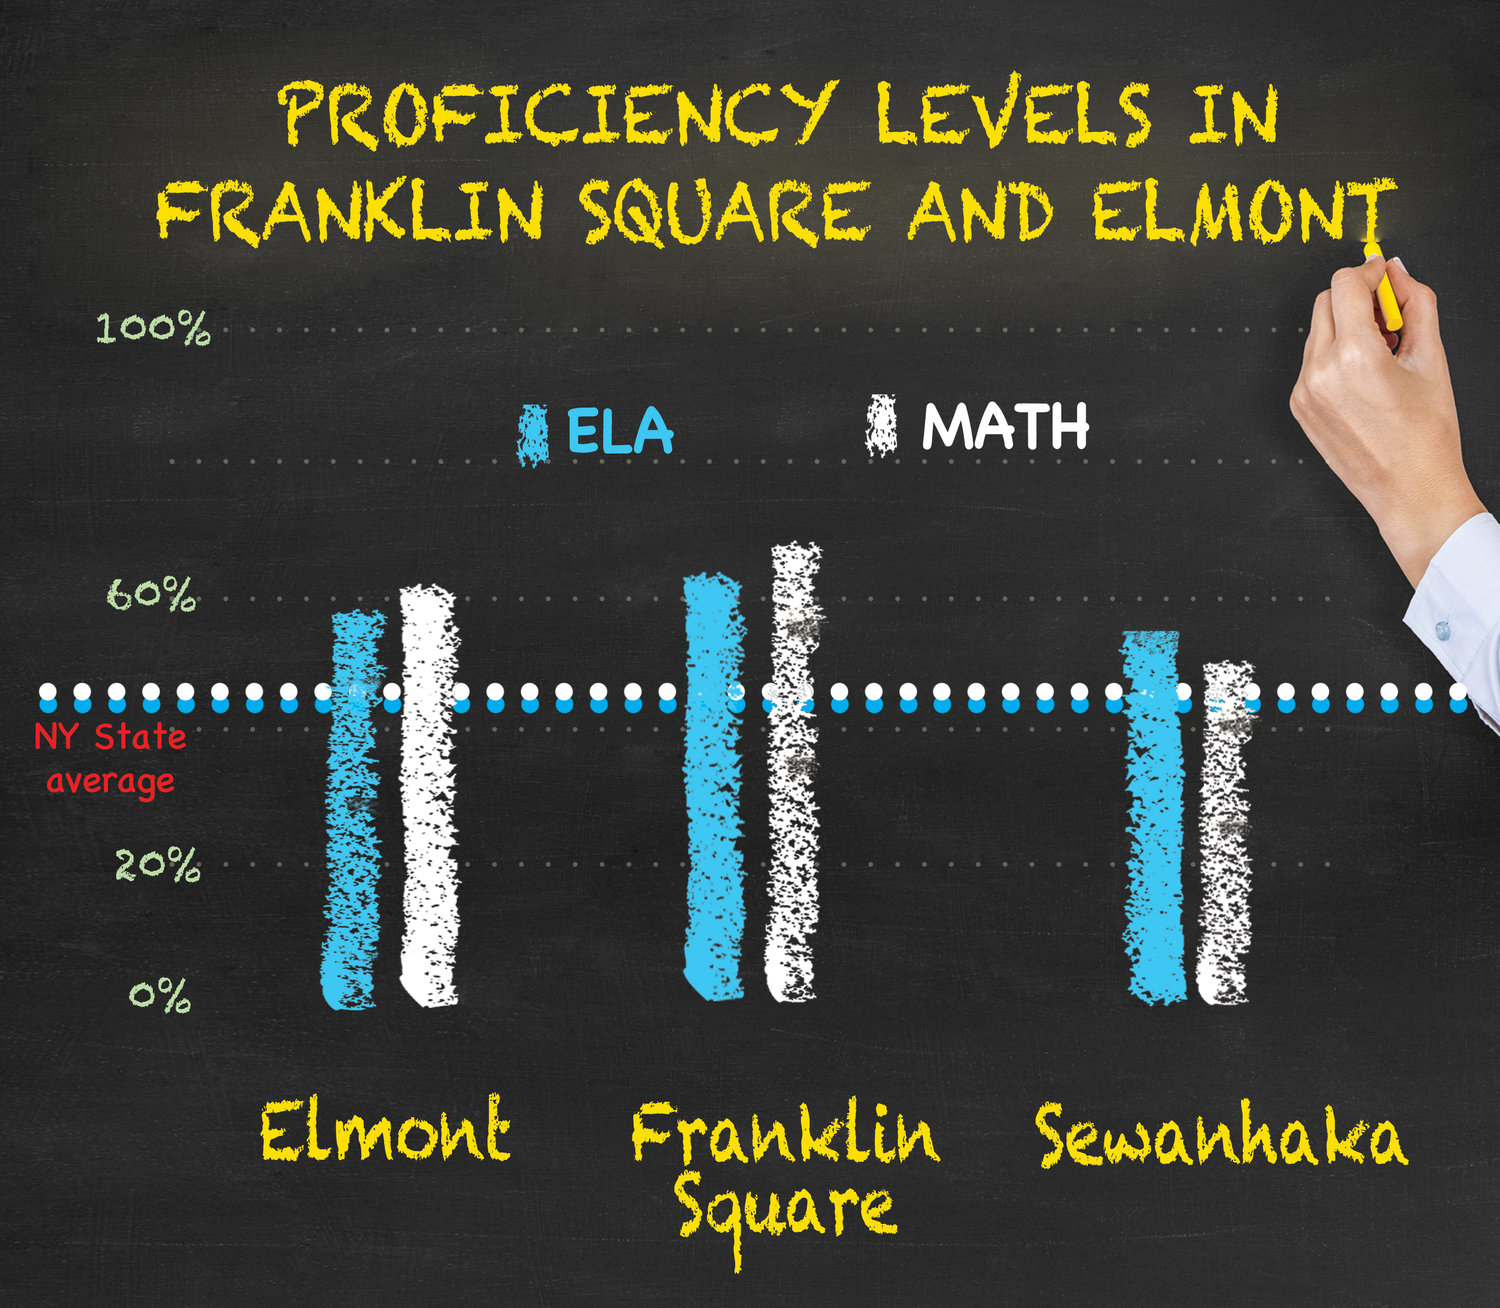 Students in Franklin Square and Elmont scored higher than the state average on the New York English and mathematics exams.